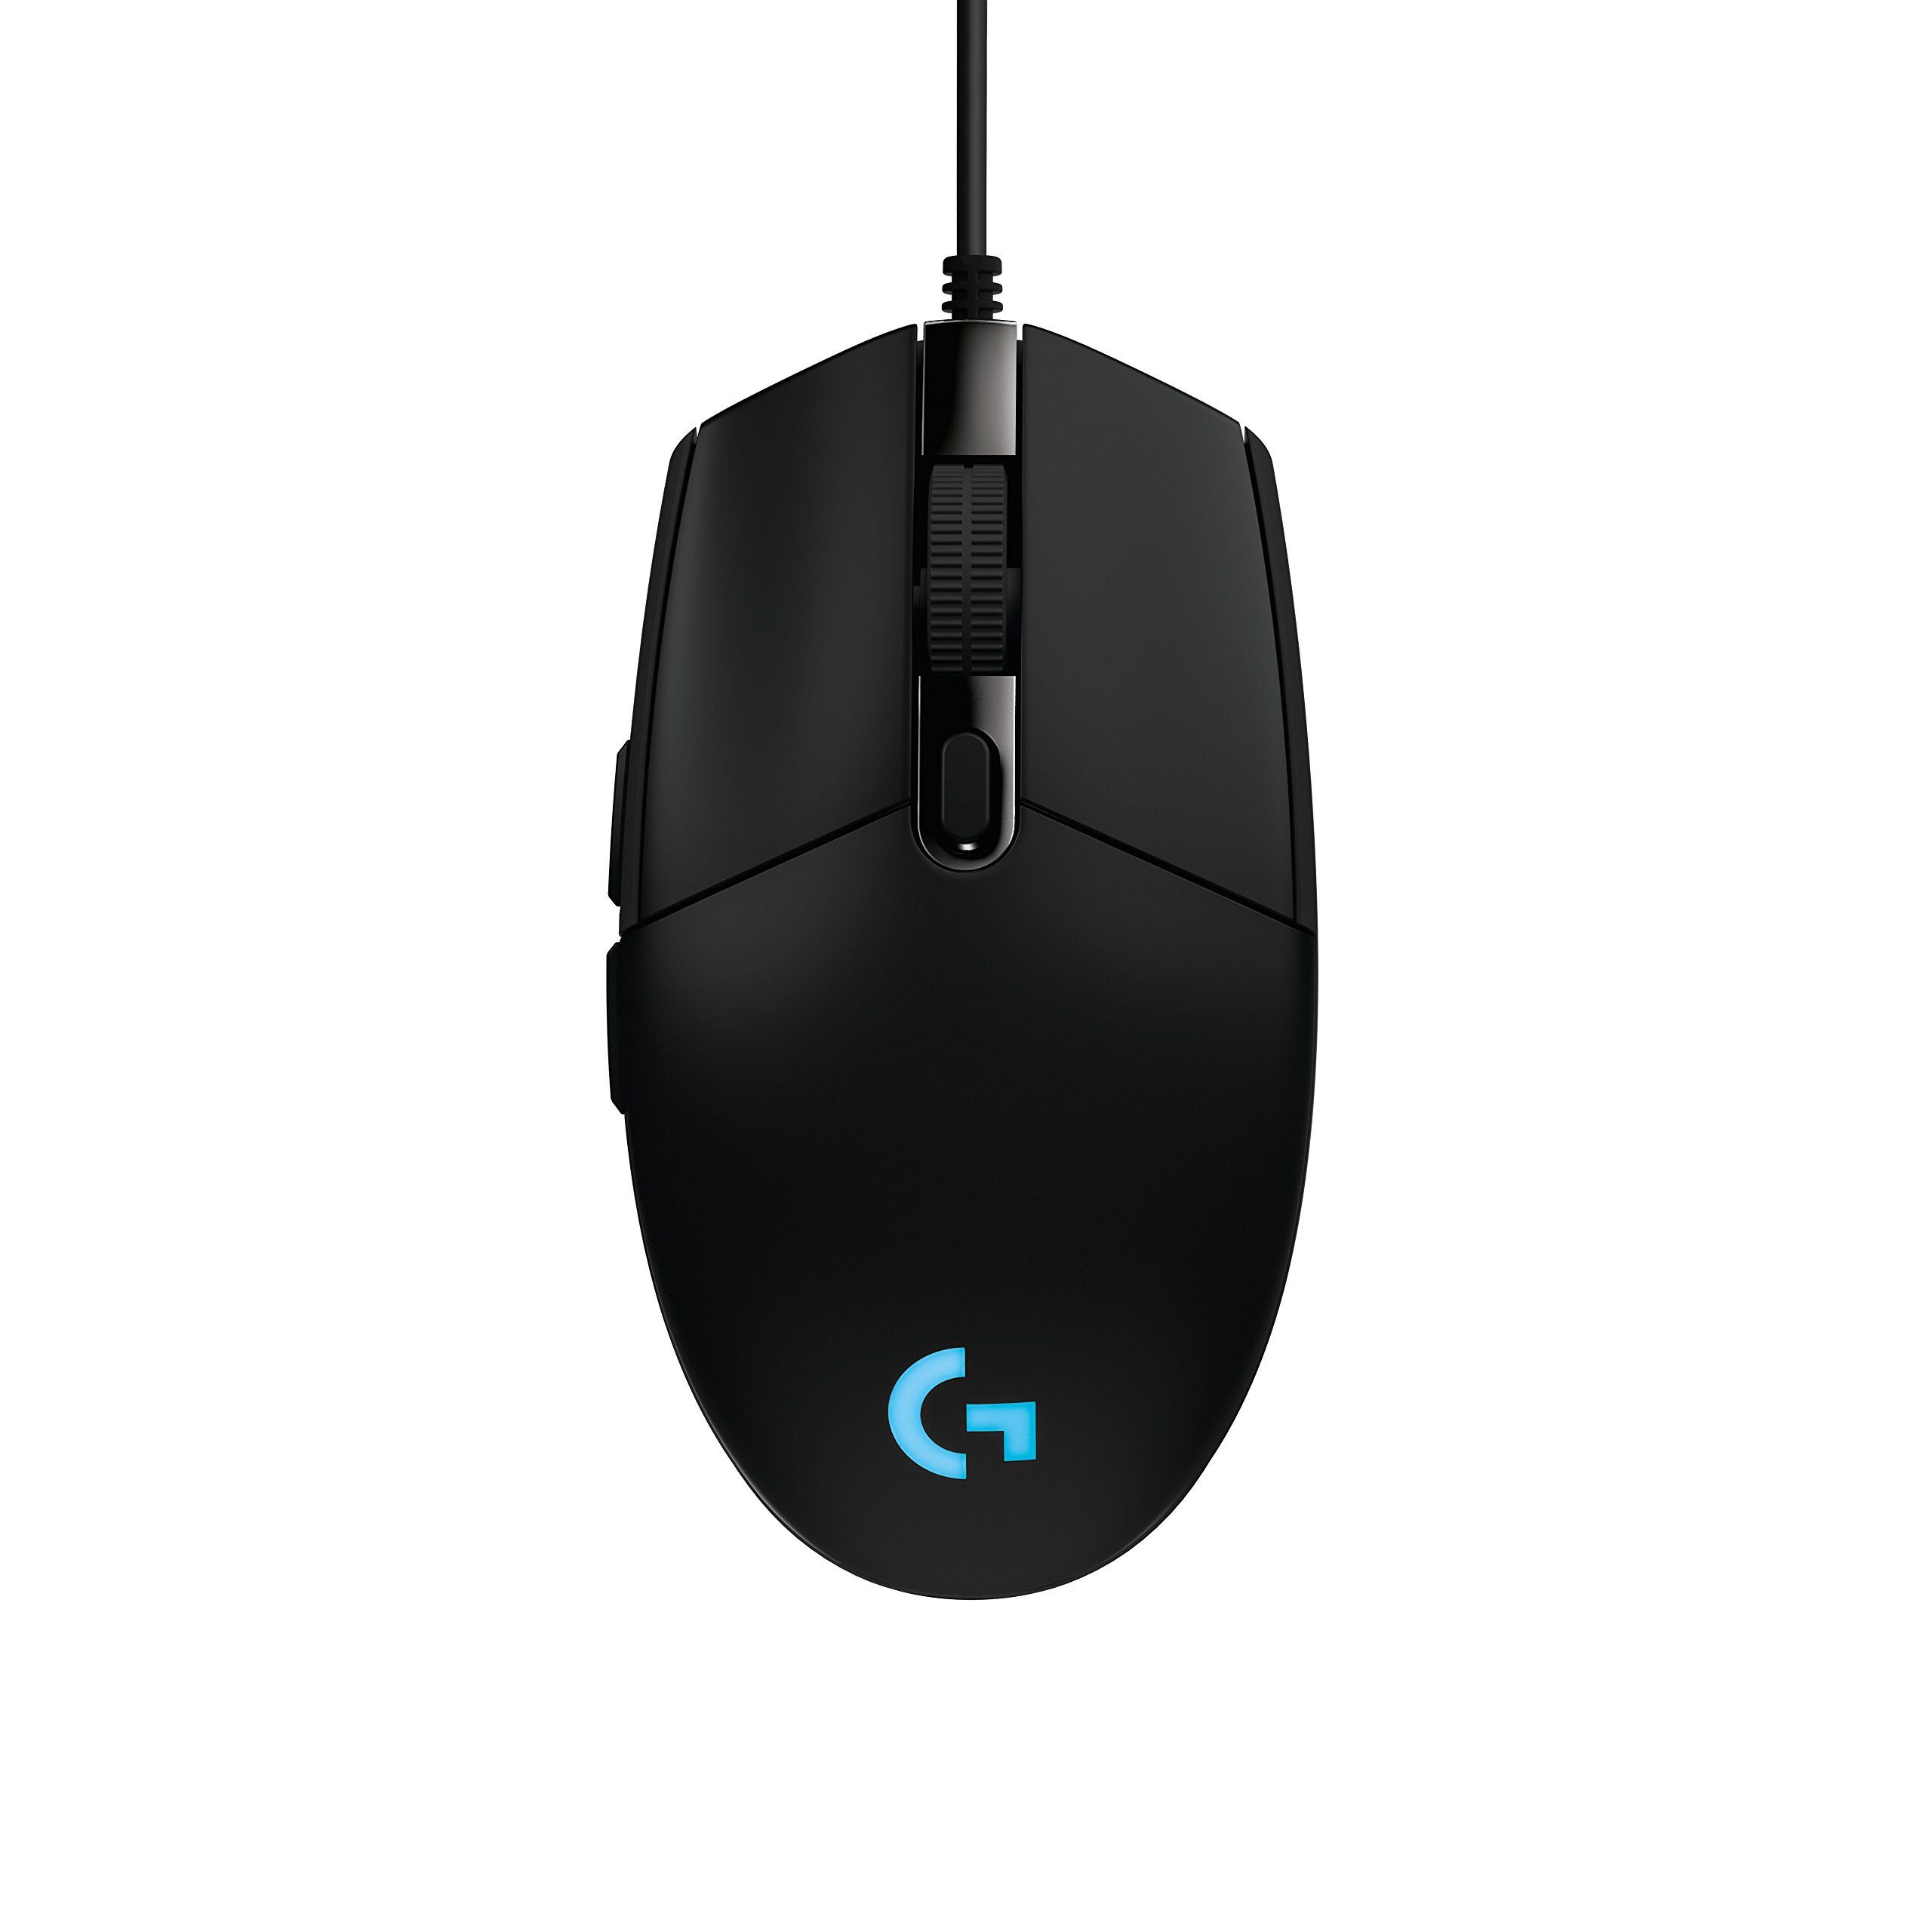 로지텍 G203 프로디지 무선 마우스 Logitech G203 Prodigy RGB Wired Gaming Mouse – Black